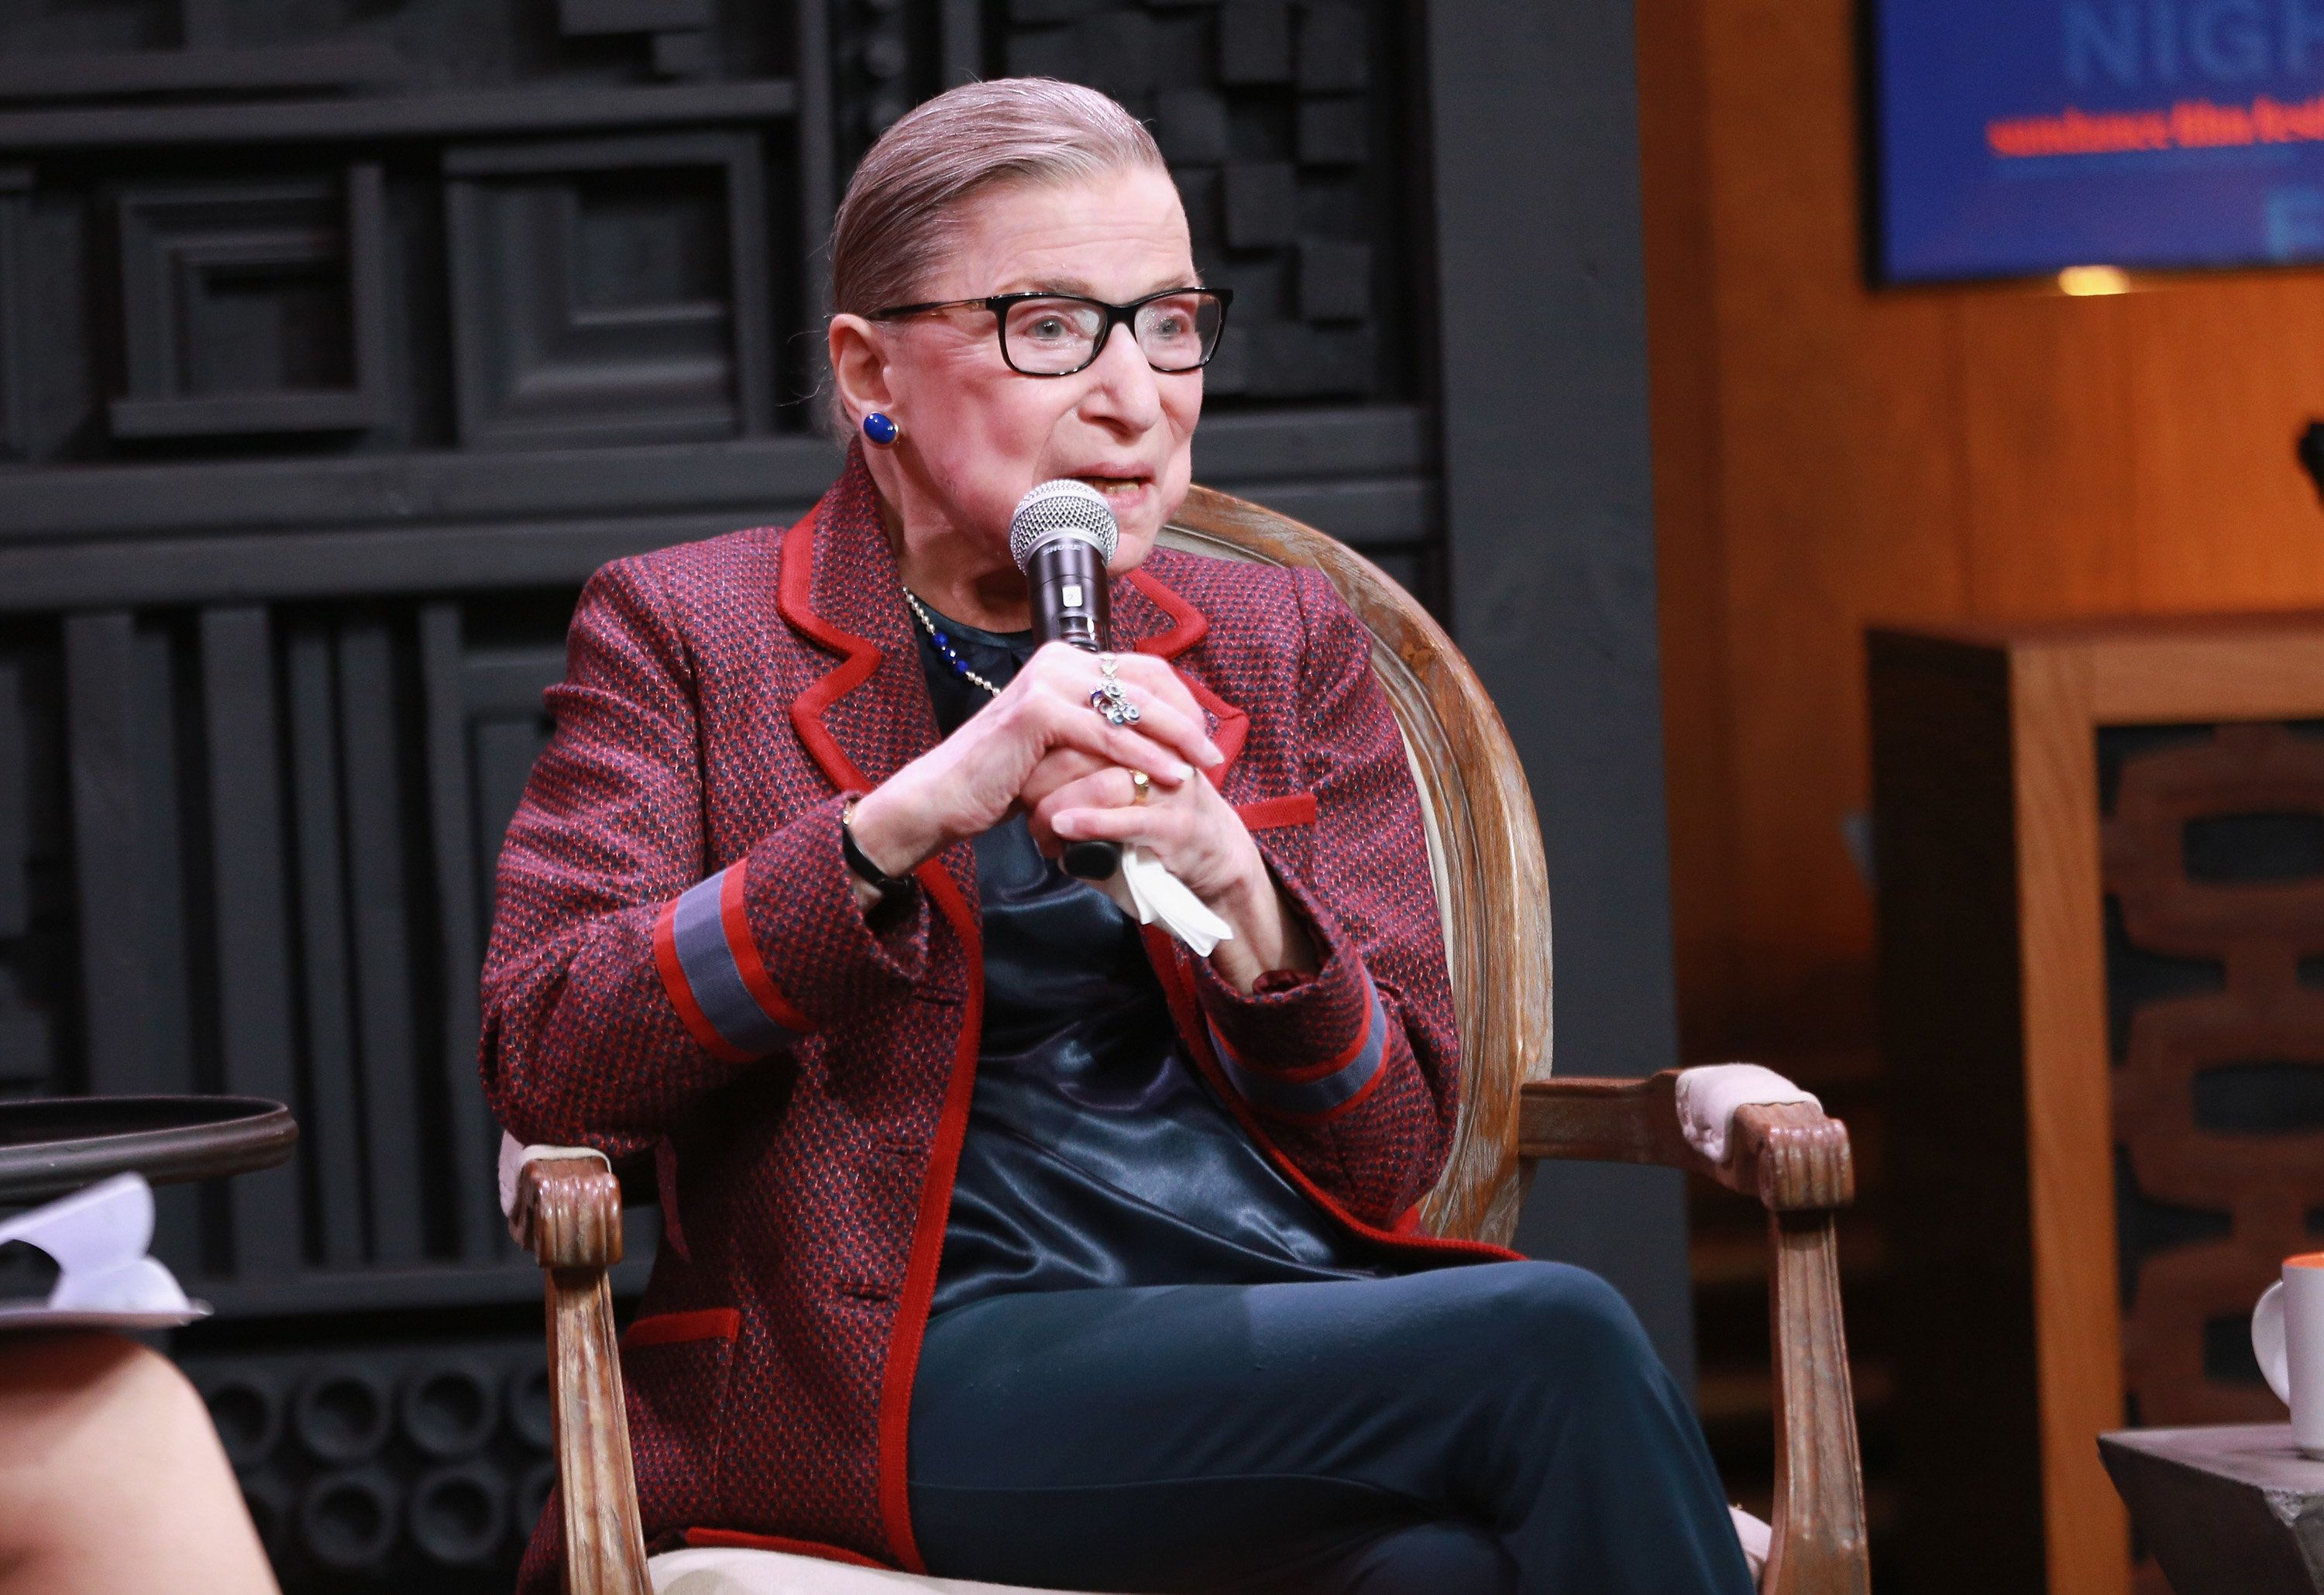 PARK CITY, UT - JANUARY 21:  Associate Justice of the Supreme Court of the United States Ruth Bader Ginsburg speaks during the Cinema Cafe with Justice Ruth Bader Ginsburg and Nina Totenberg during the 2018 Sundance Film Festival at Filmmaker Lodge on January 21, 2018 in Park City, Utah.  (Photo by Robin Marchant/Getty Images)